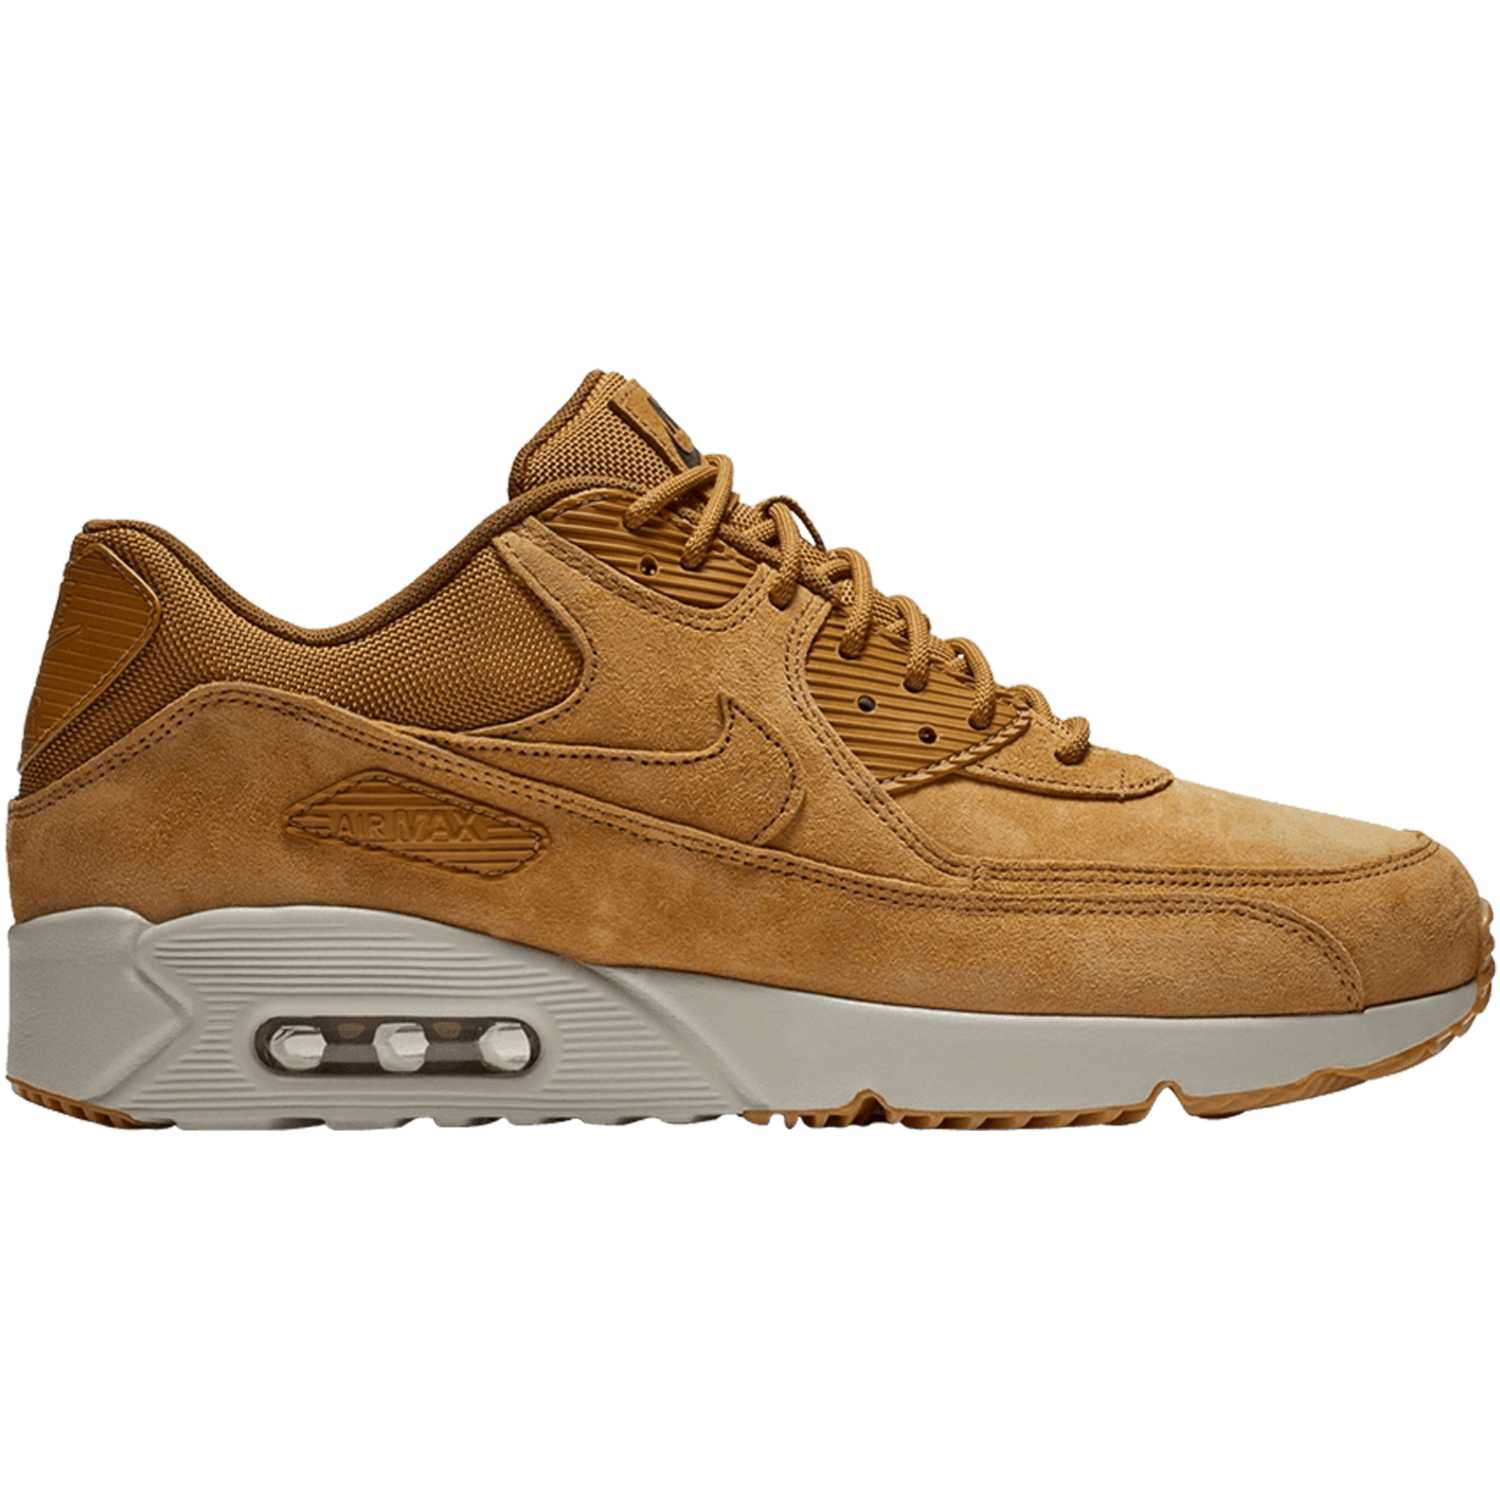 Nike air max 90 ultra 2.0 ltr Camel